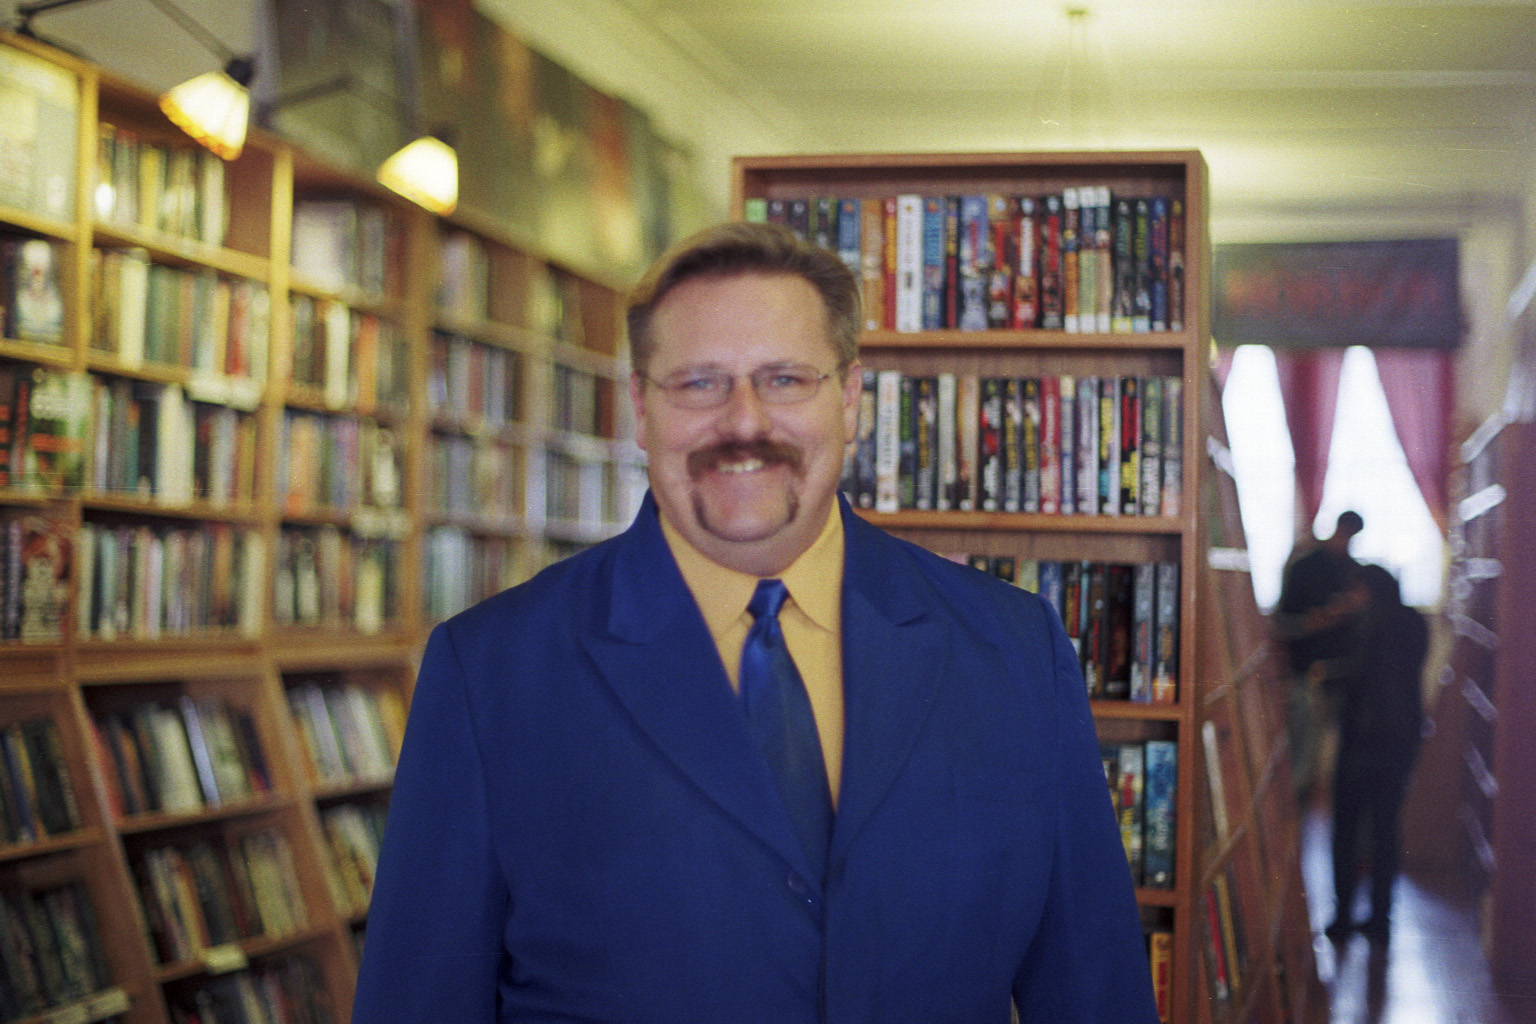 Jeremy bedecked in his opulent blue suit at Borderlands Books.